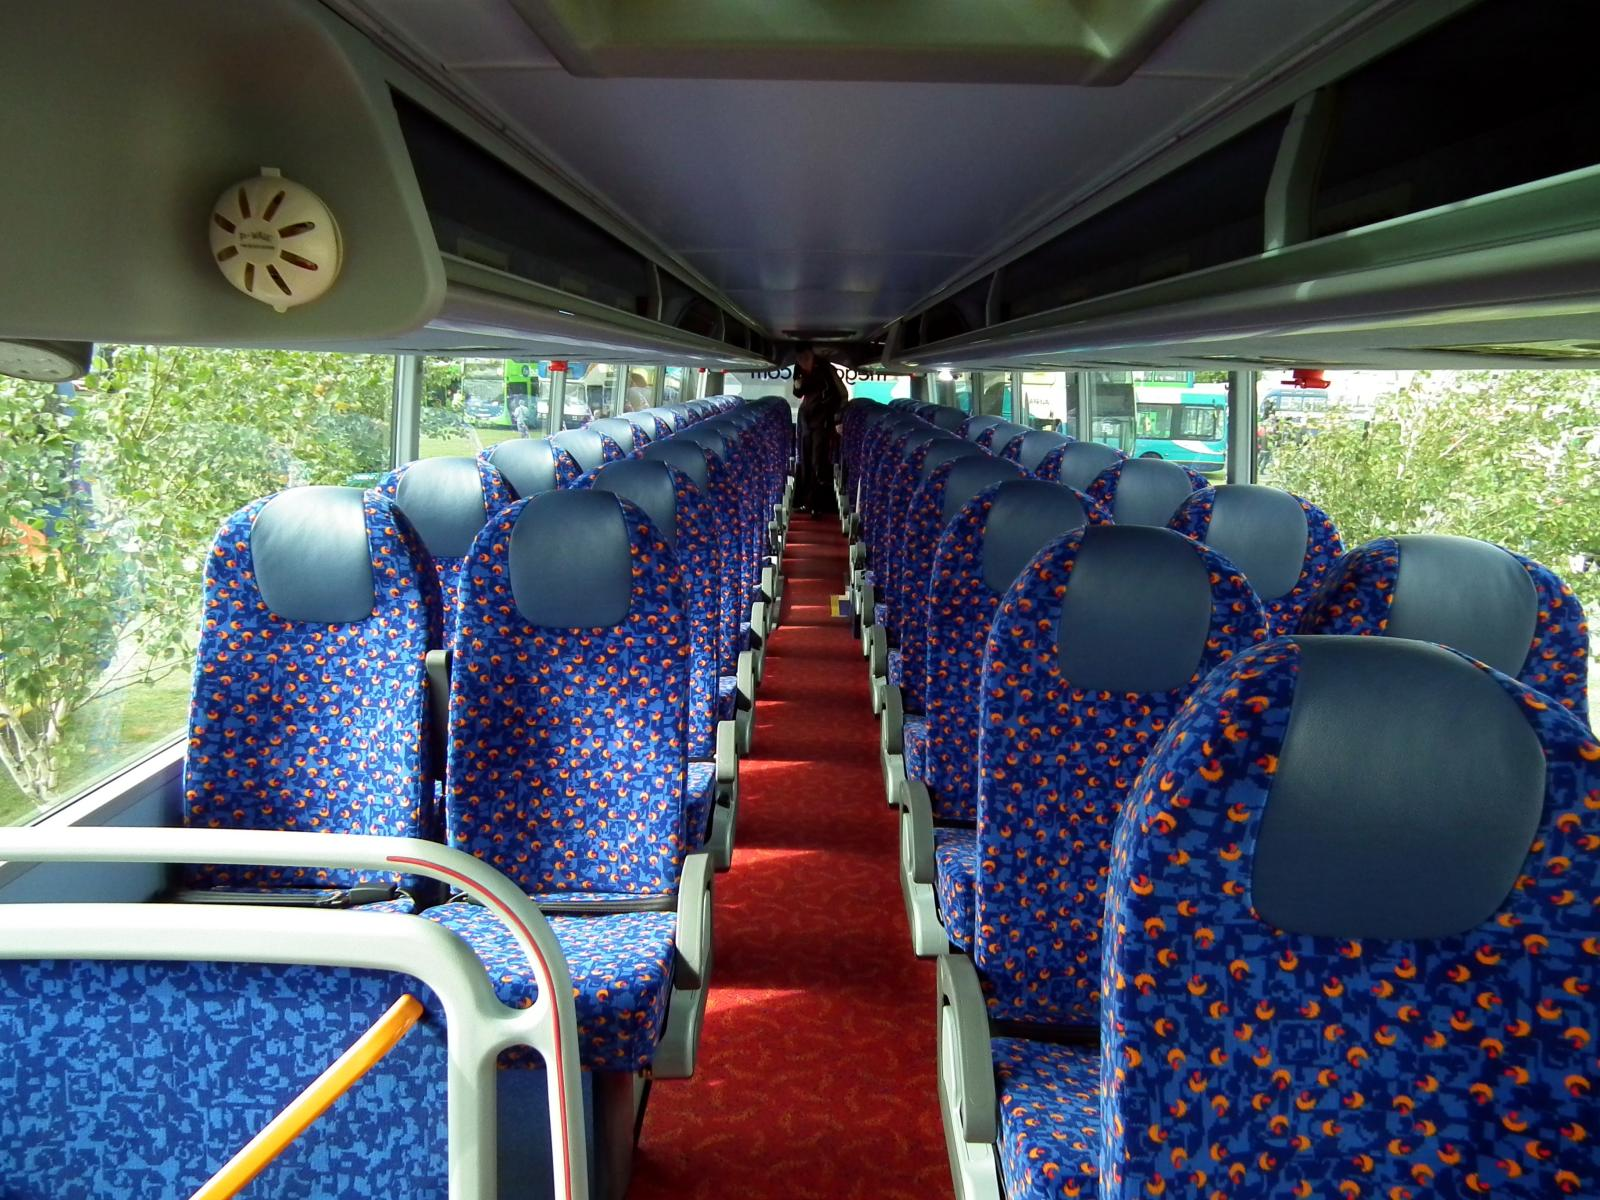 File Megabus 50245 Sv12 Dvw Interior 3 Jpg Wikimedia Commons